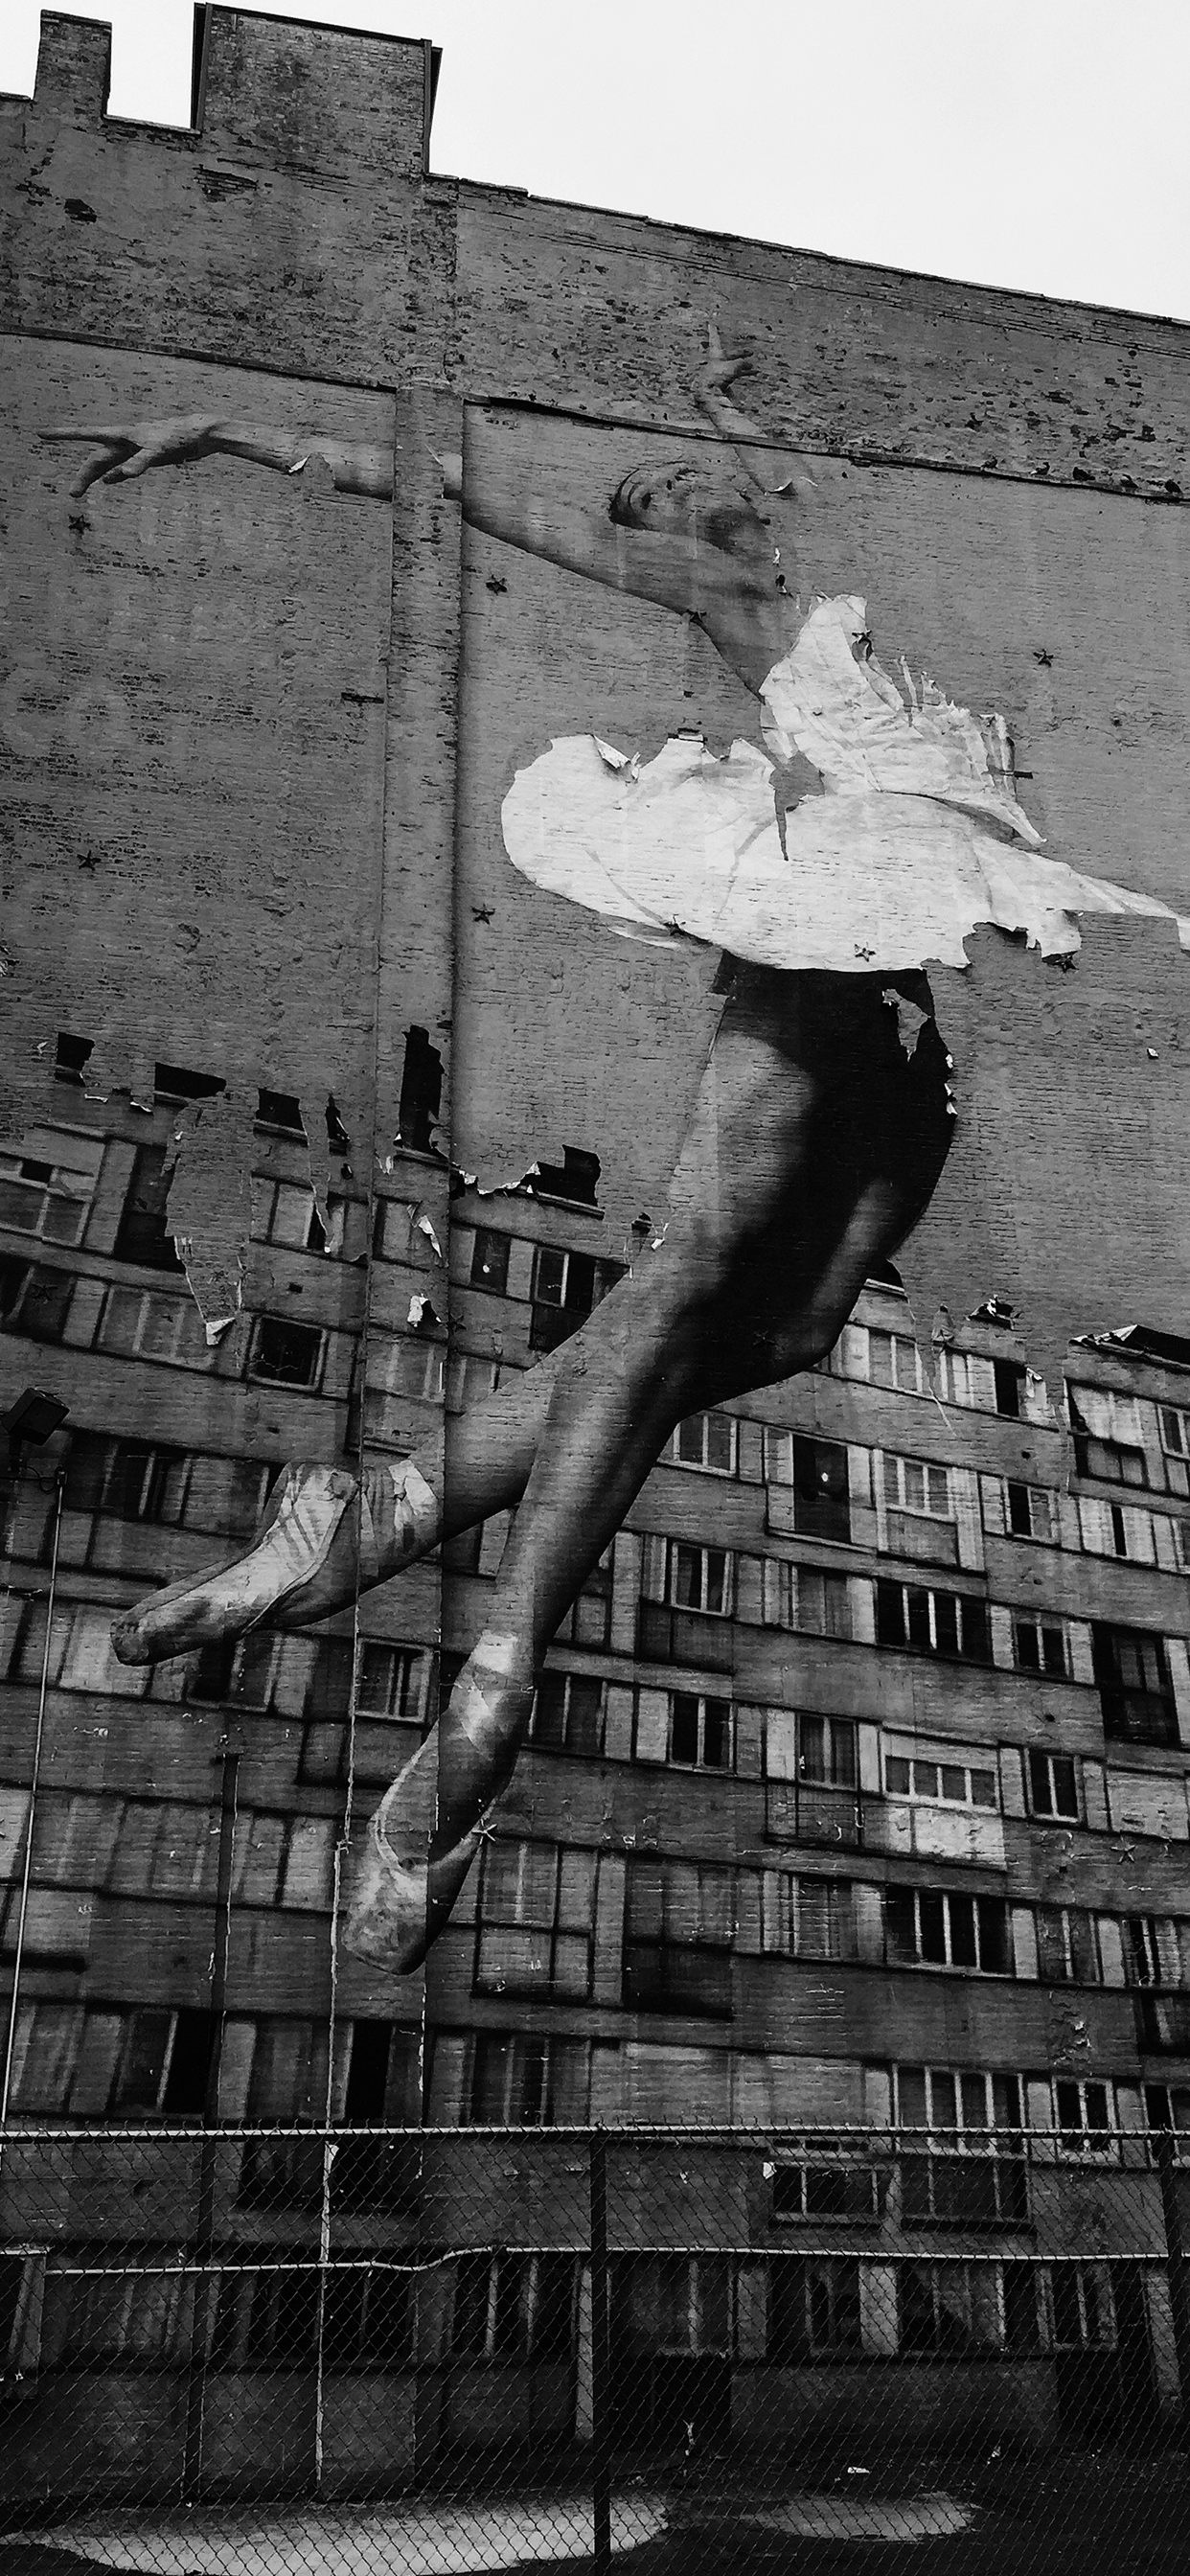 iPhone wallpaper graffiti ballet dancer Fonds d'écran iPhone du 21/03/2019